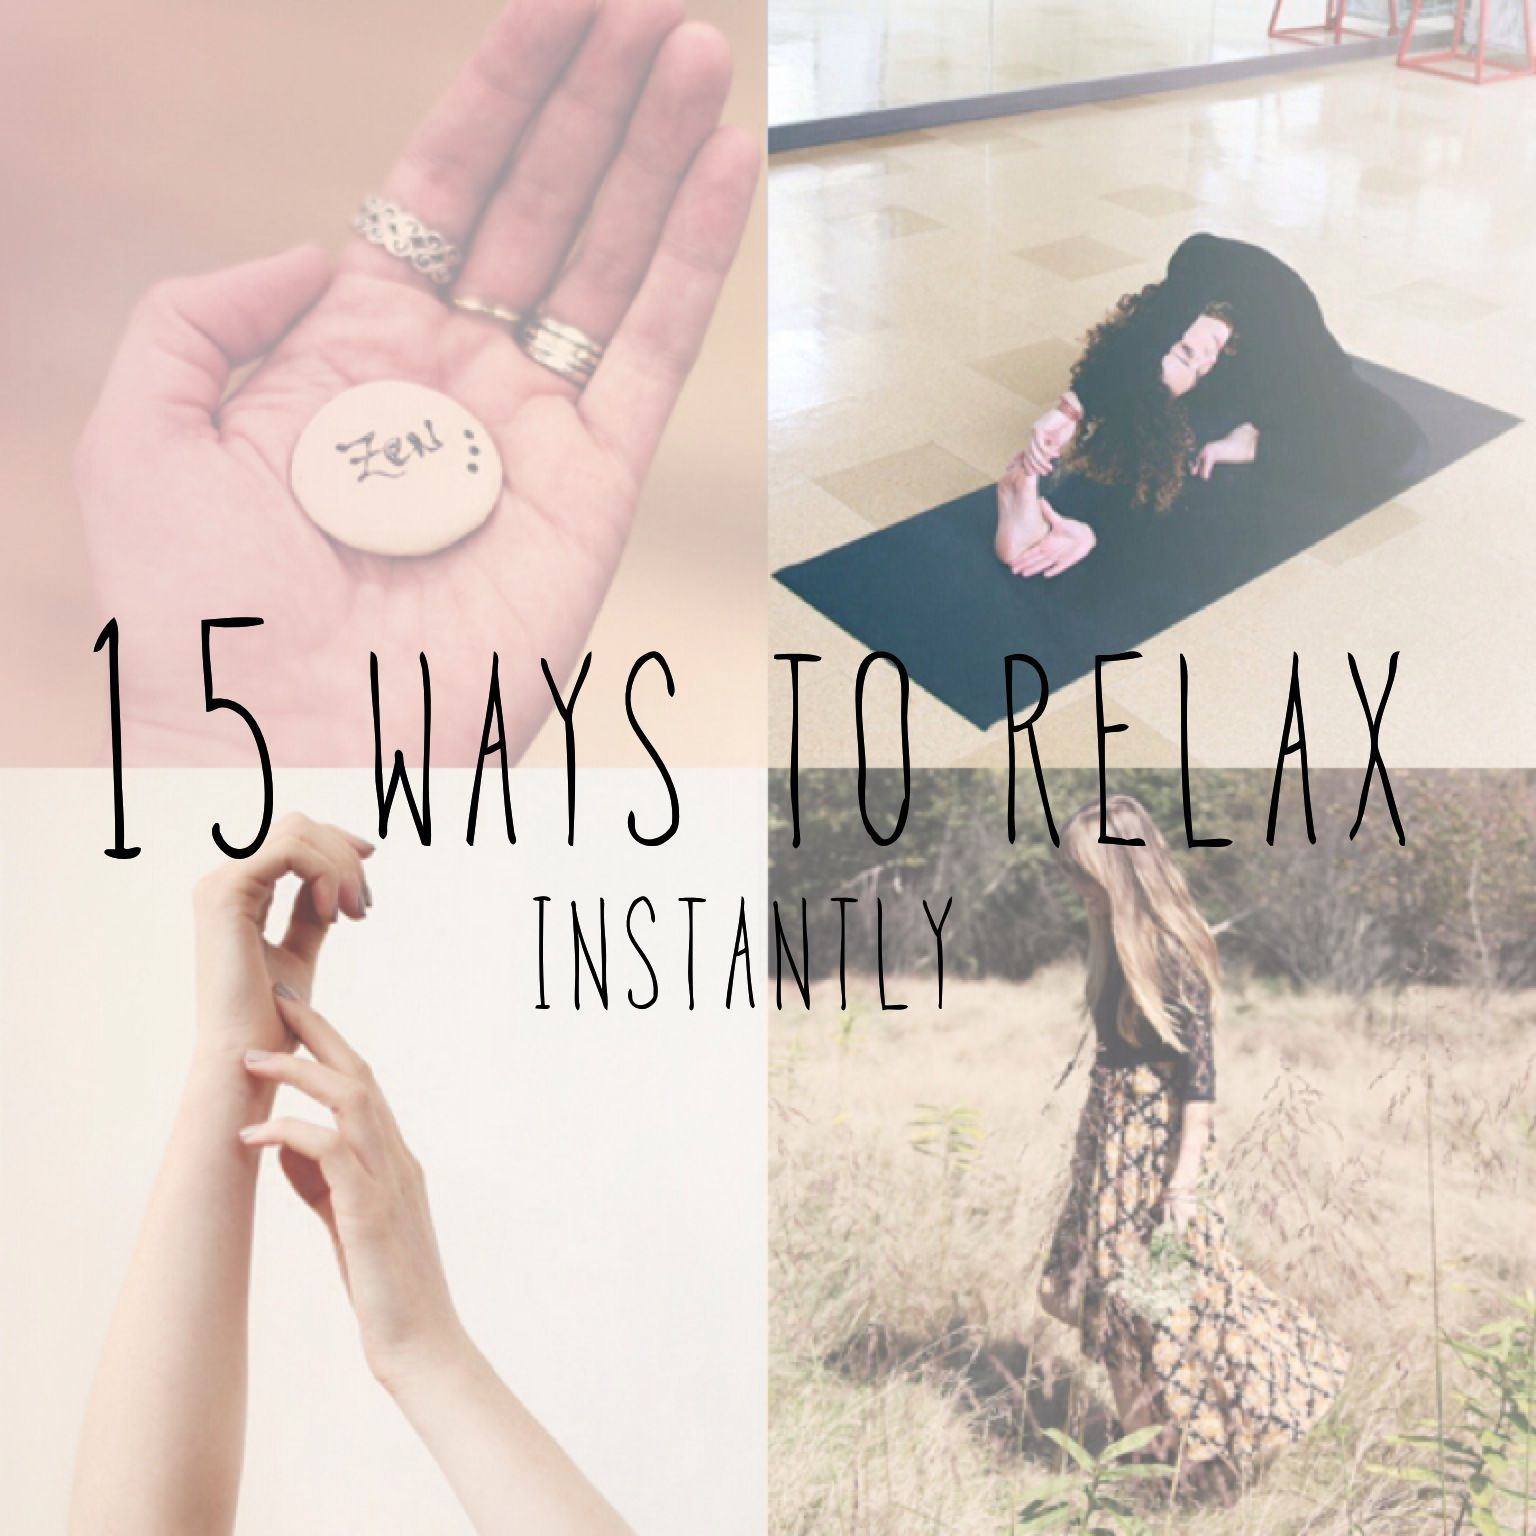 15 ways to relax - instantly! http://blog.freepeople.com/2013/09/ways-instantly-relax/